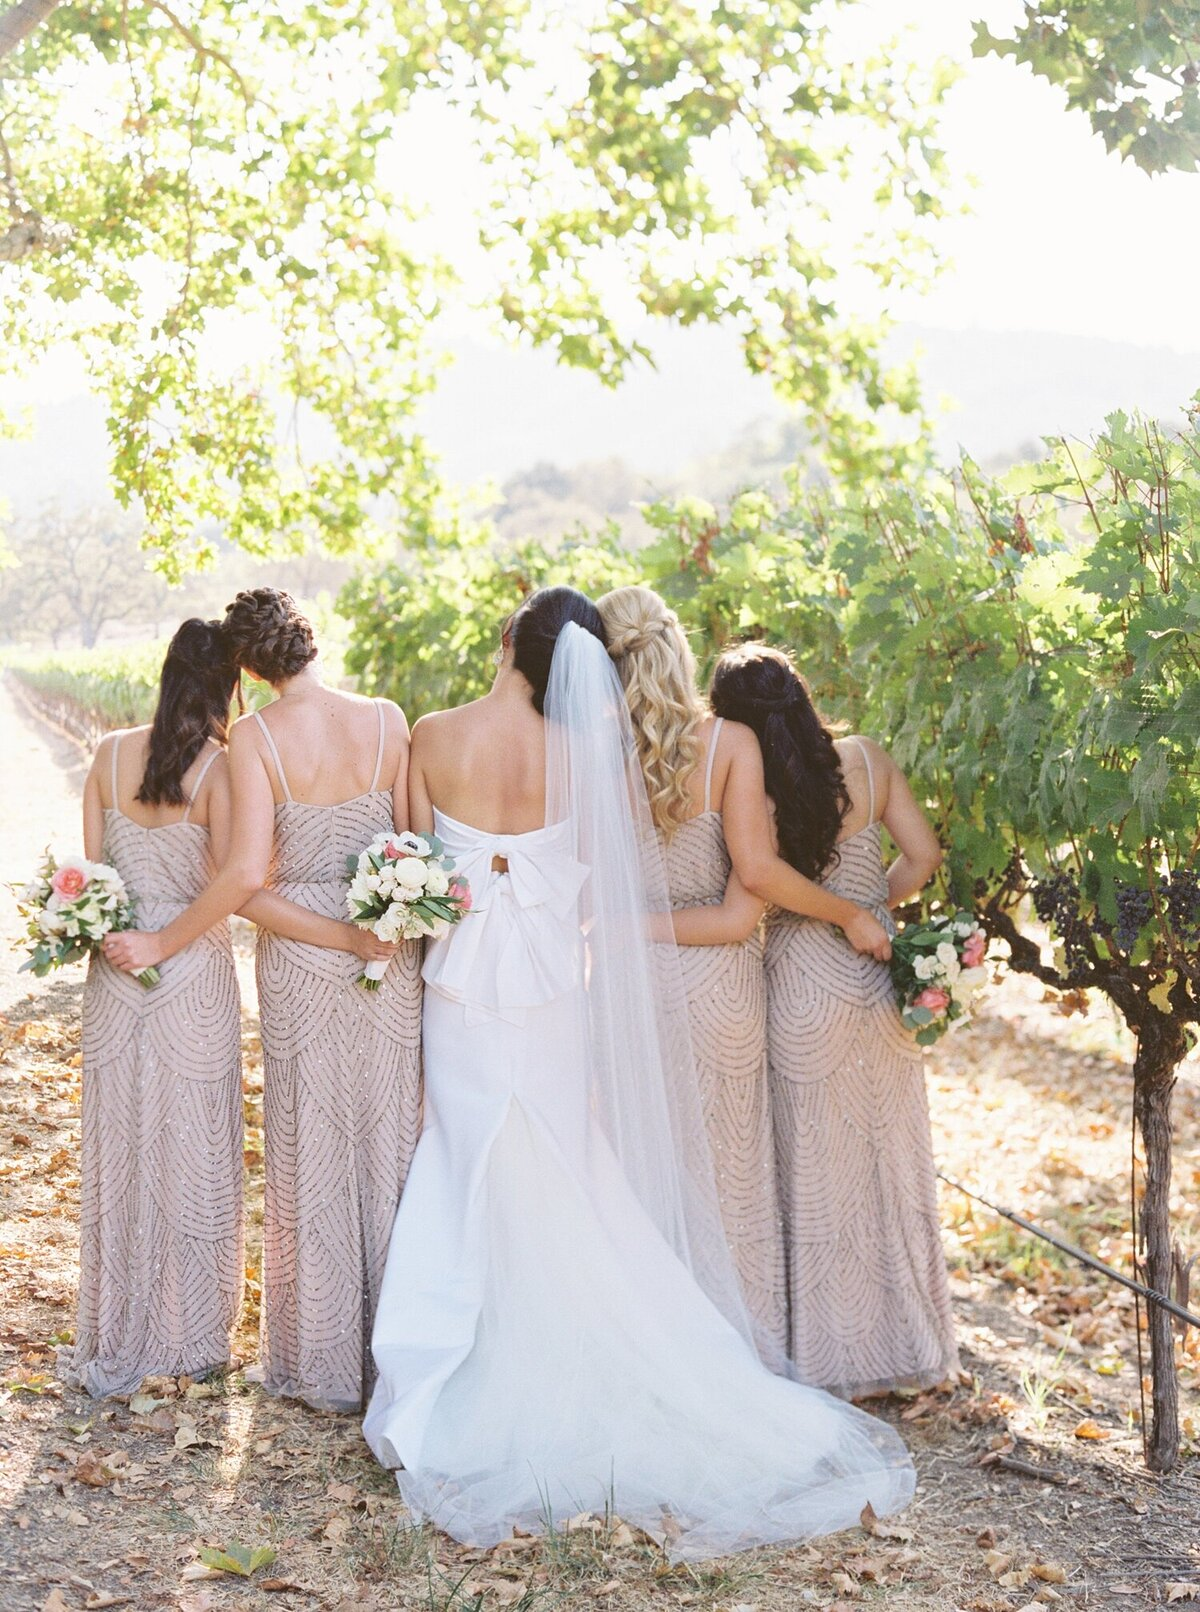 Domaine_Chandon_Winery_Yountville_Wedding-004